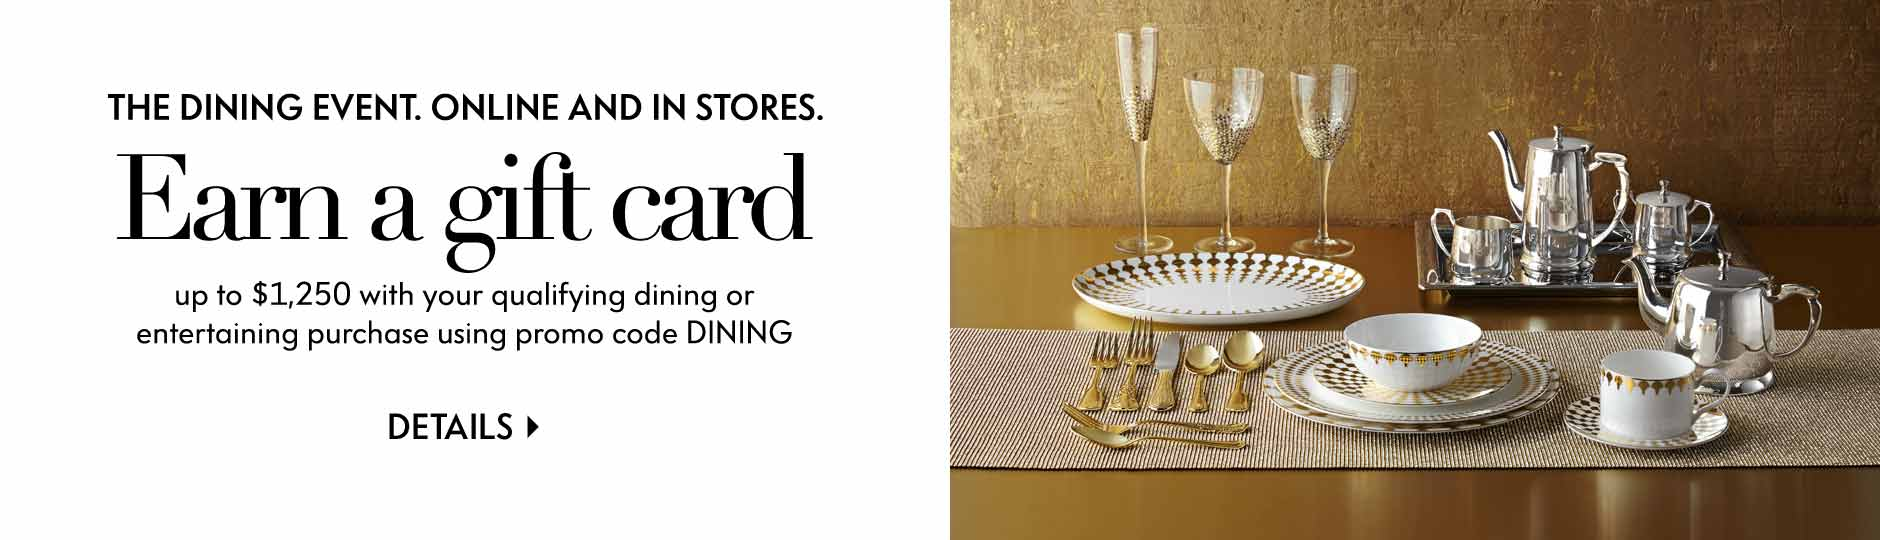 The Dining Event. Online and in Stores: Earn a gift card - up to $1,250 with your qualifying dining or entertaining purchase using promo code DINING - Details